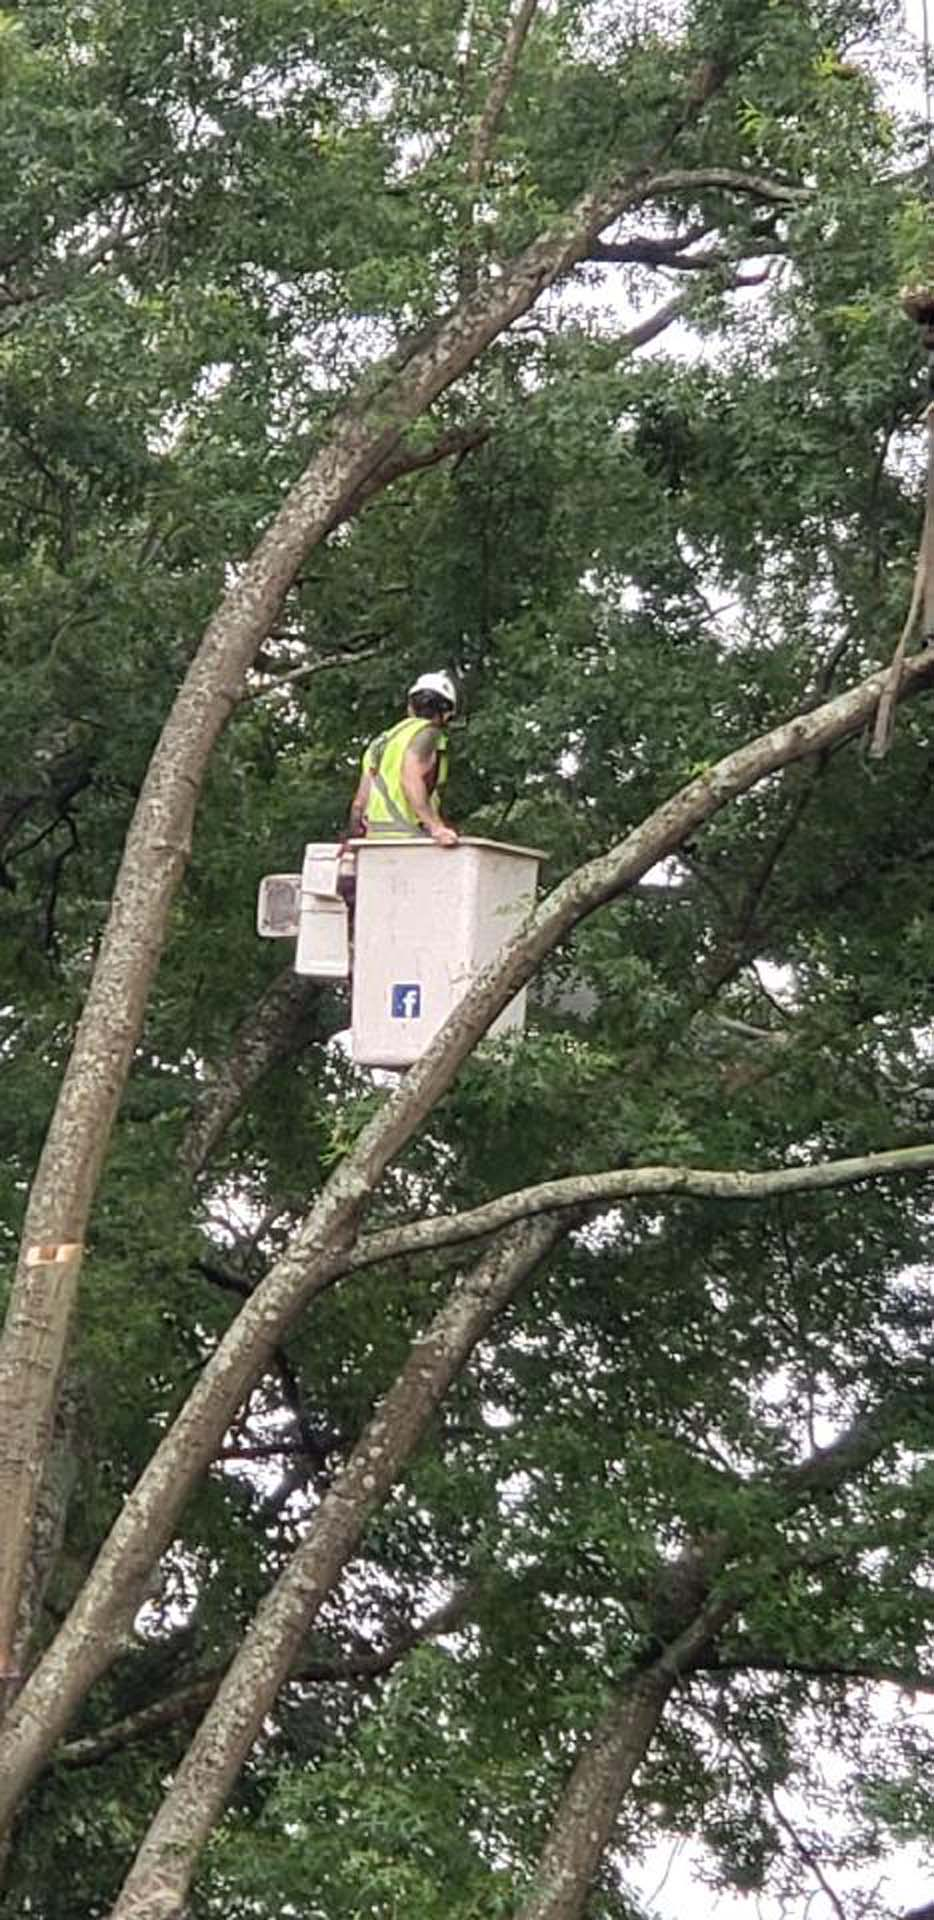 Man In Cherry Picker Trimming Tree